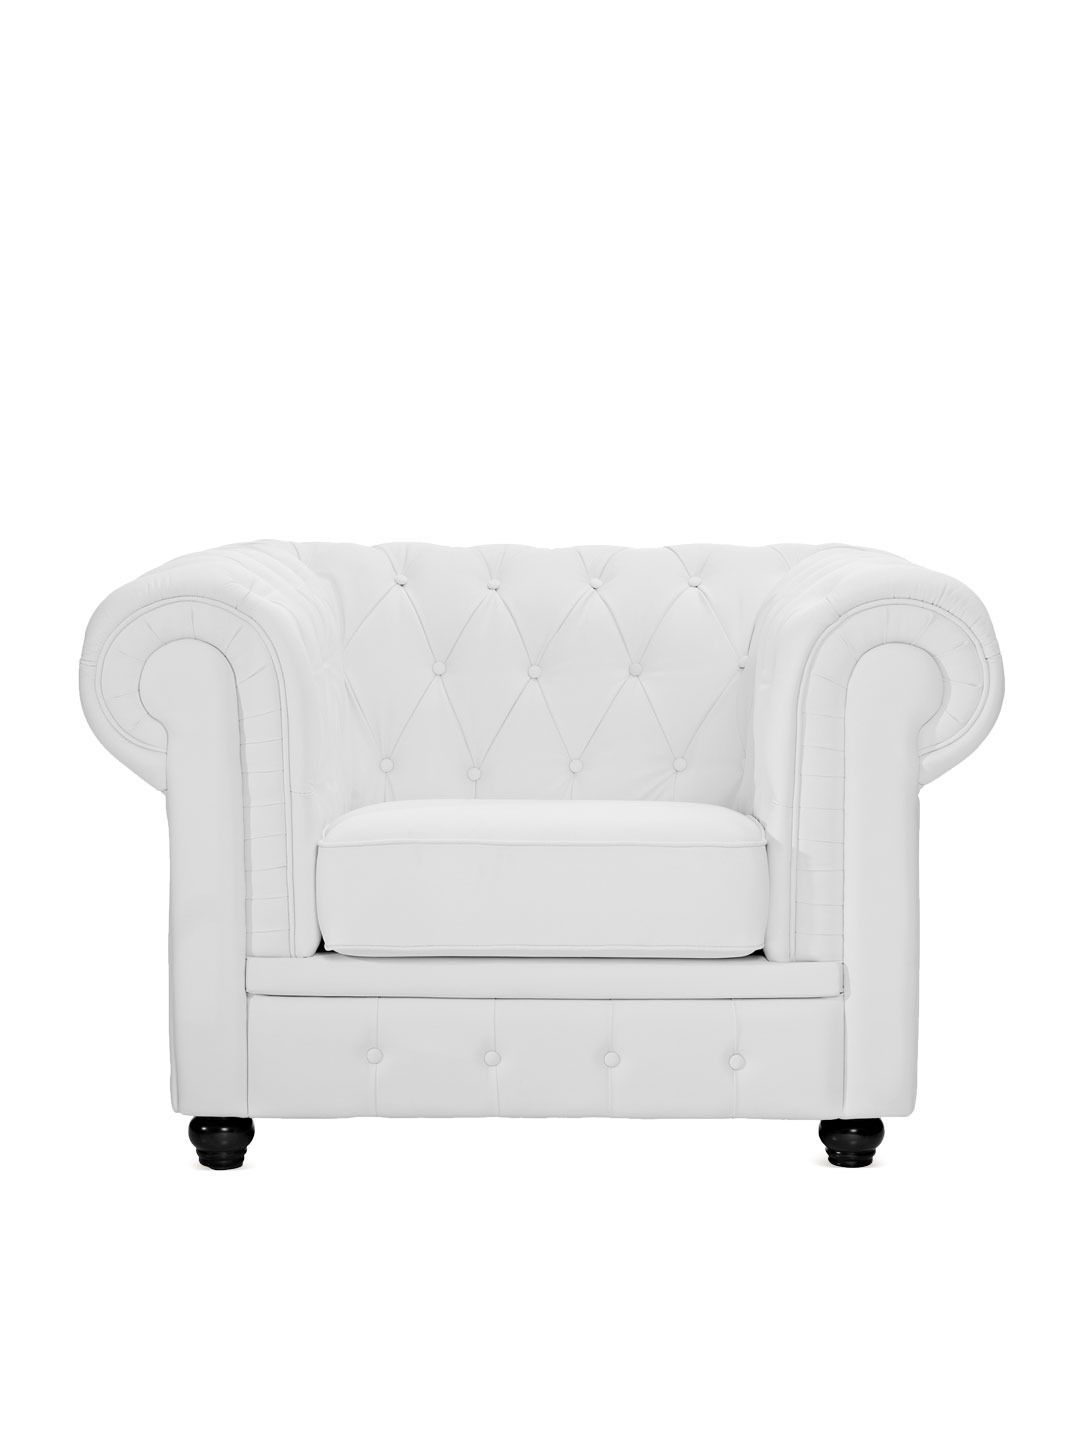 pearl river modern ny - chesterfield armchair by pearl river modern ny at gilt dream